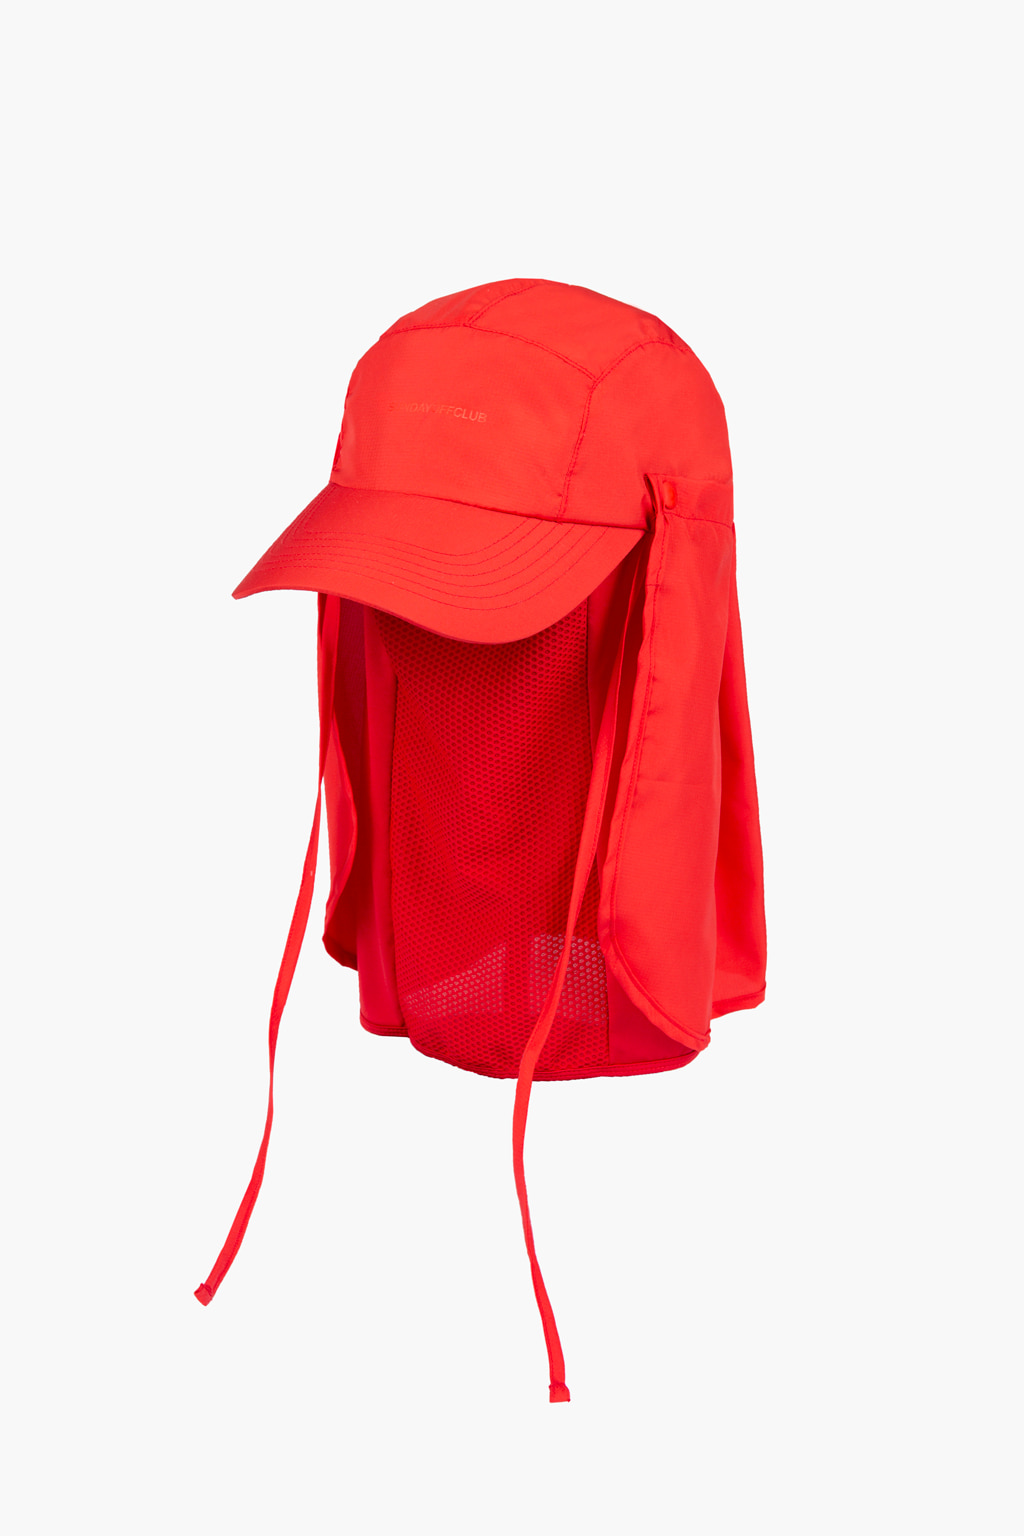 3-in-1 Desert Cap - red